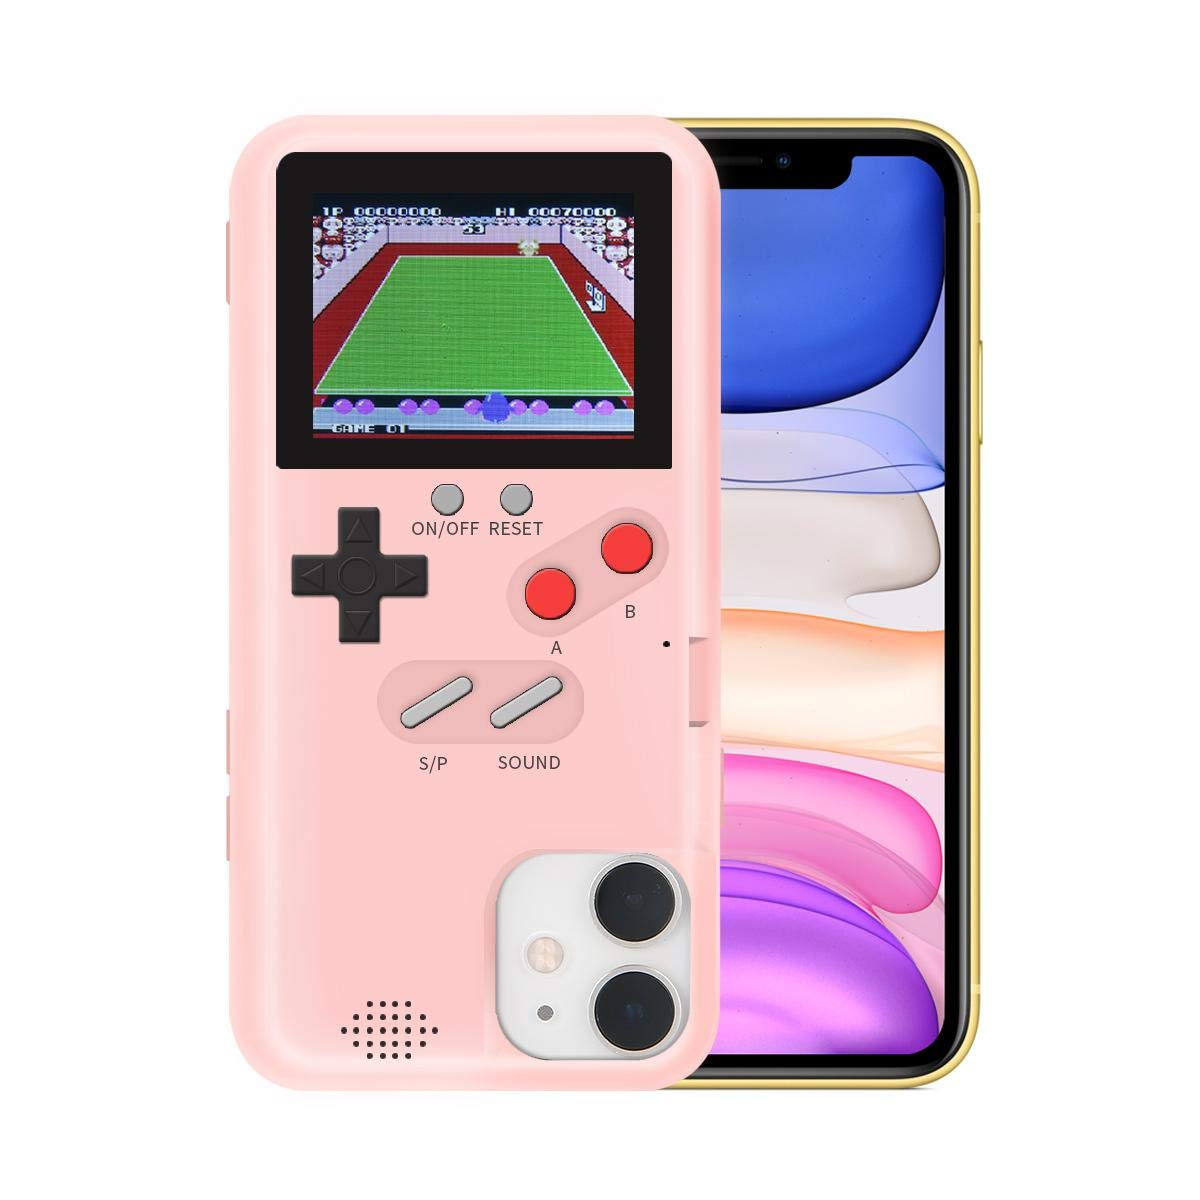 KOBWA Gameboy Case for iPhone,Retro 3D Gameboy Design Style Silicone Cover Case with 36 Small Games,Color Screen,Video Game Cover Case for iPhone 11/11Pro/11Pro,and More (Pink, iPhone 11 Pro)